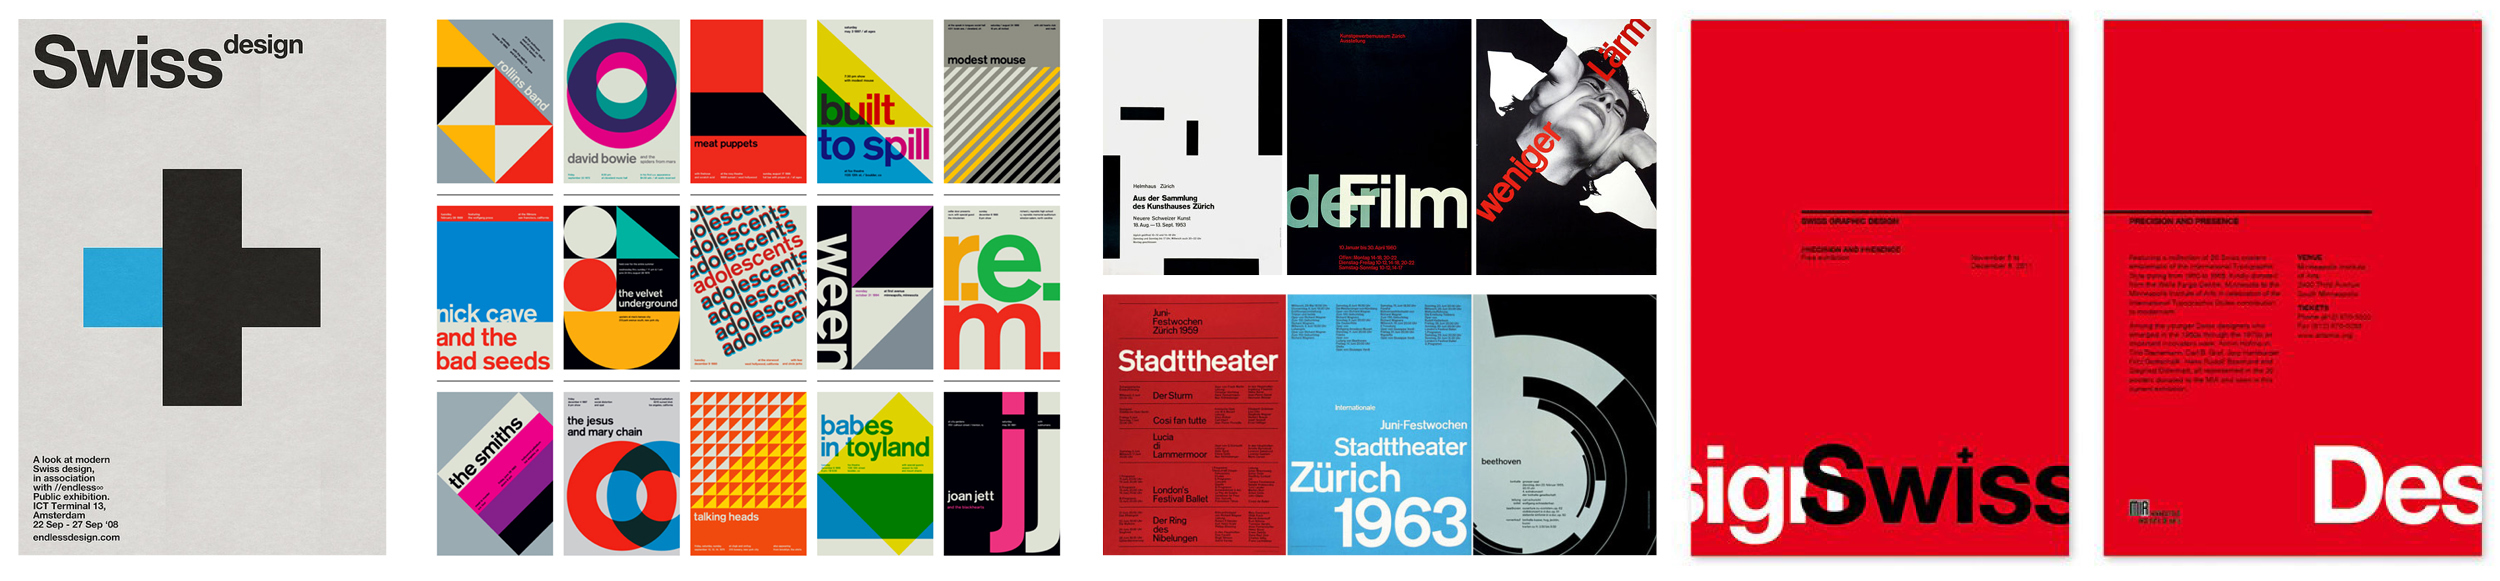 Some examples of Swiss design compiled during the research phase.